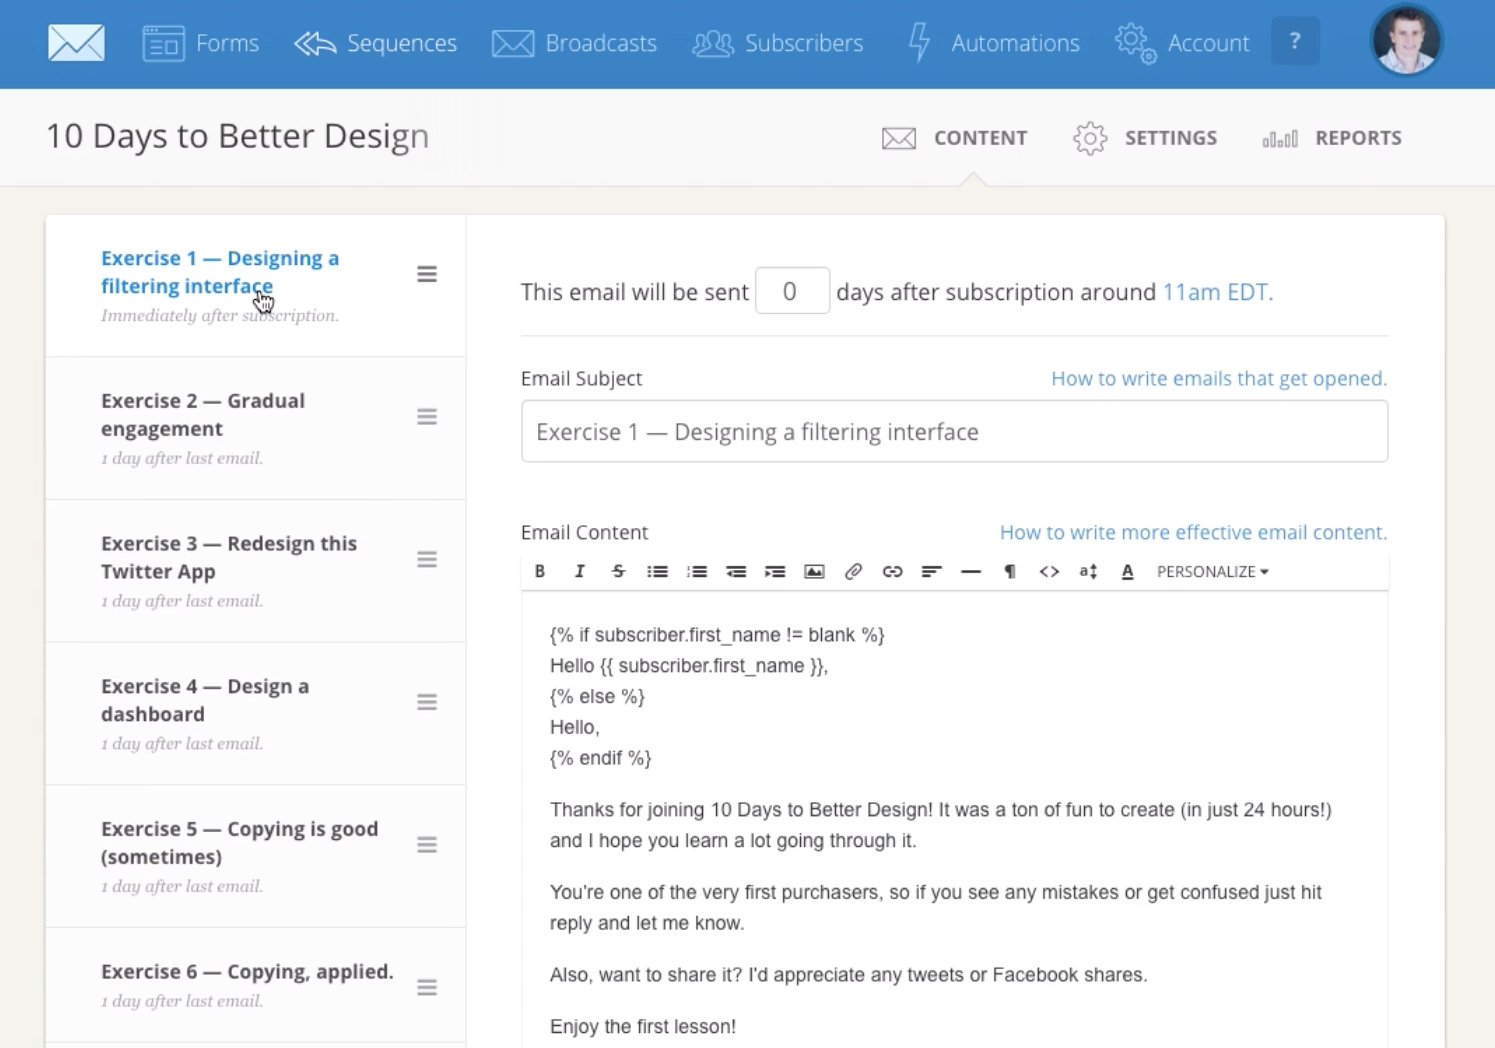 Users can create and manage drip email marketing campaigns in ConvertKit